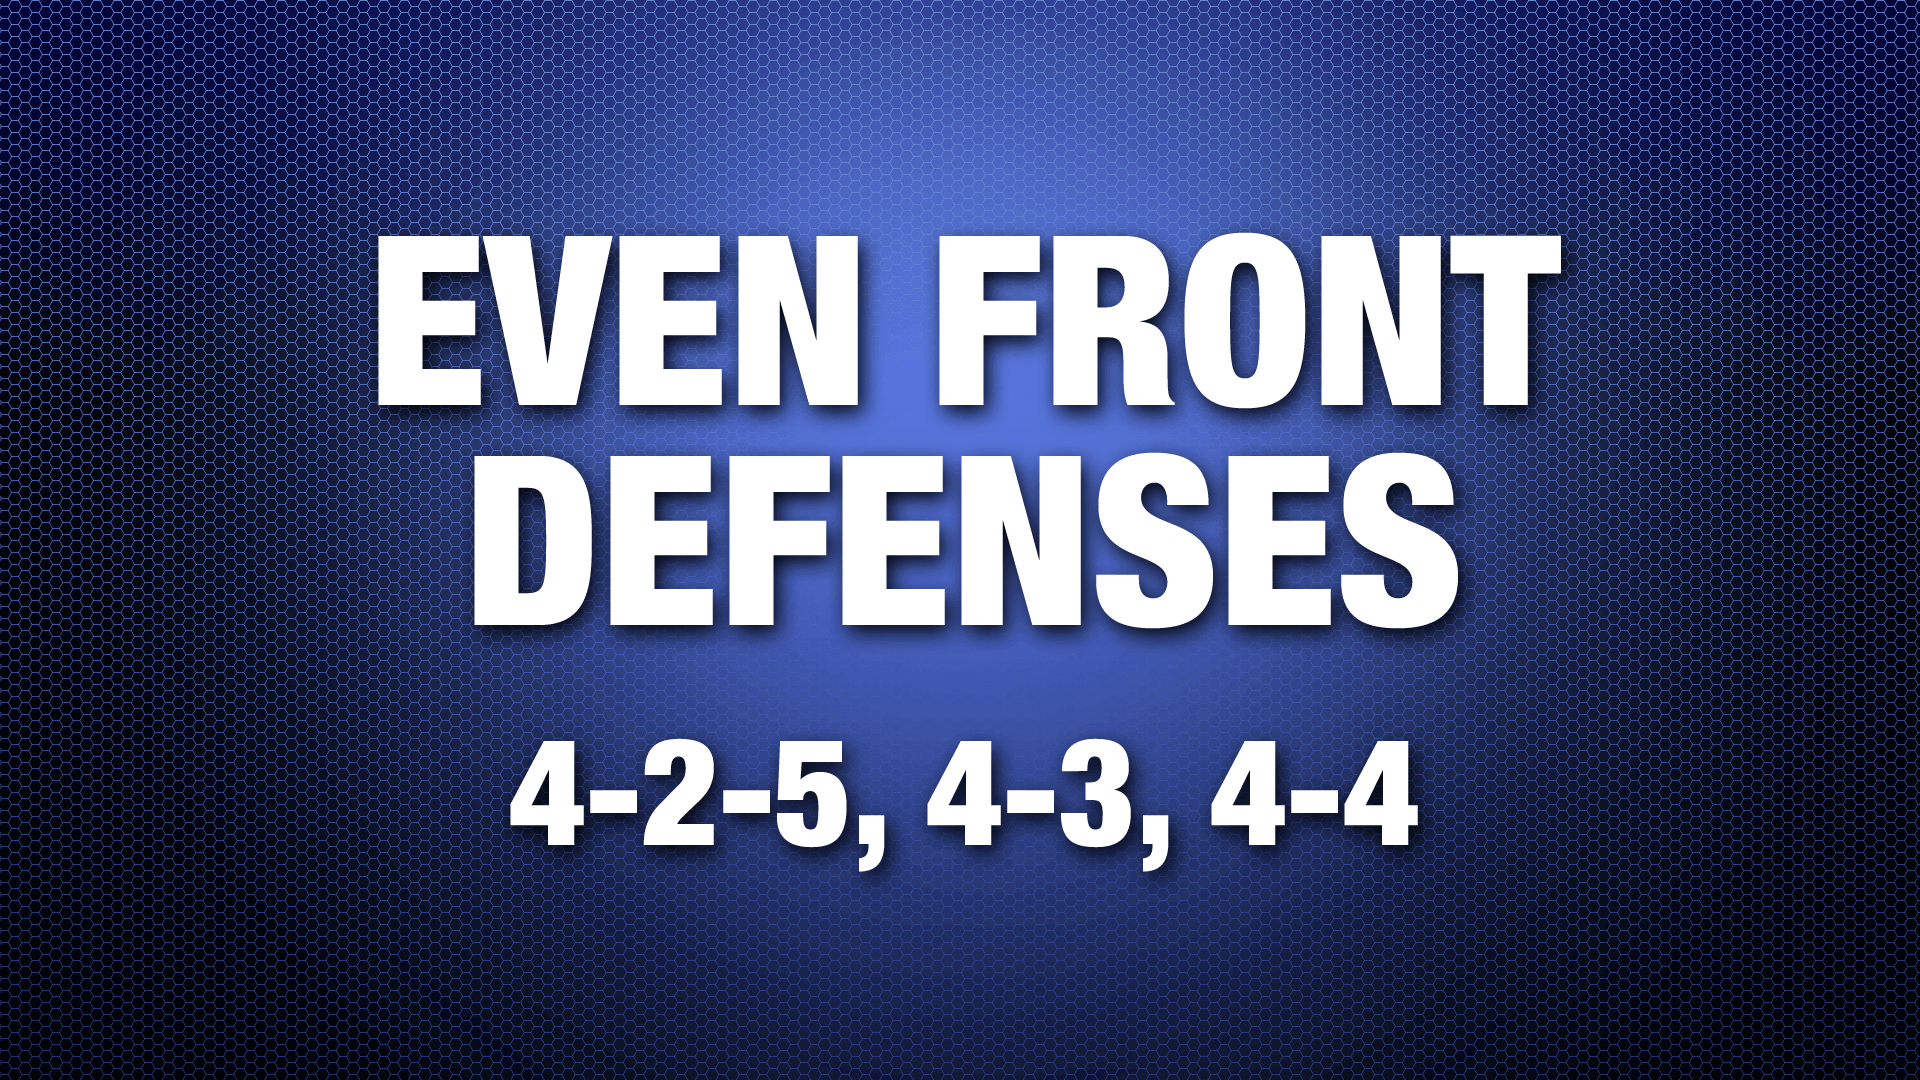 EvenFront4-2-5,4-3